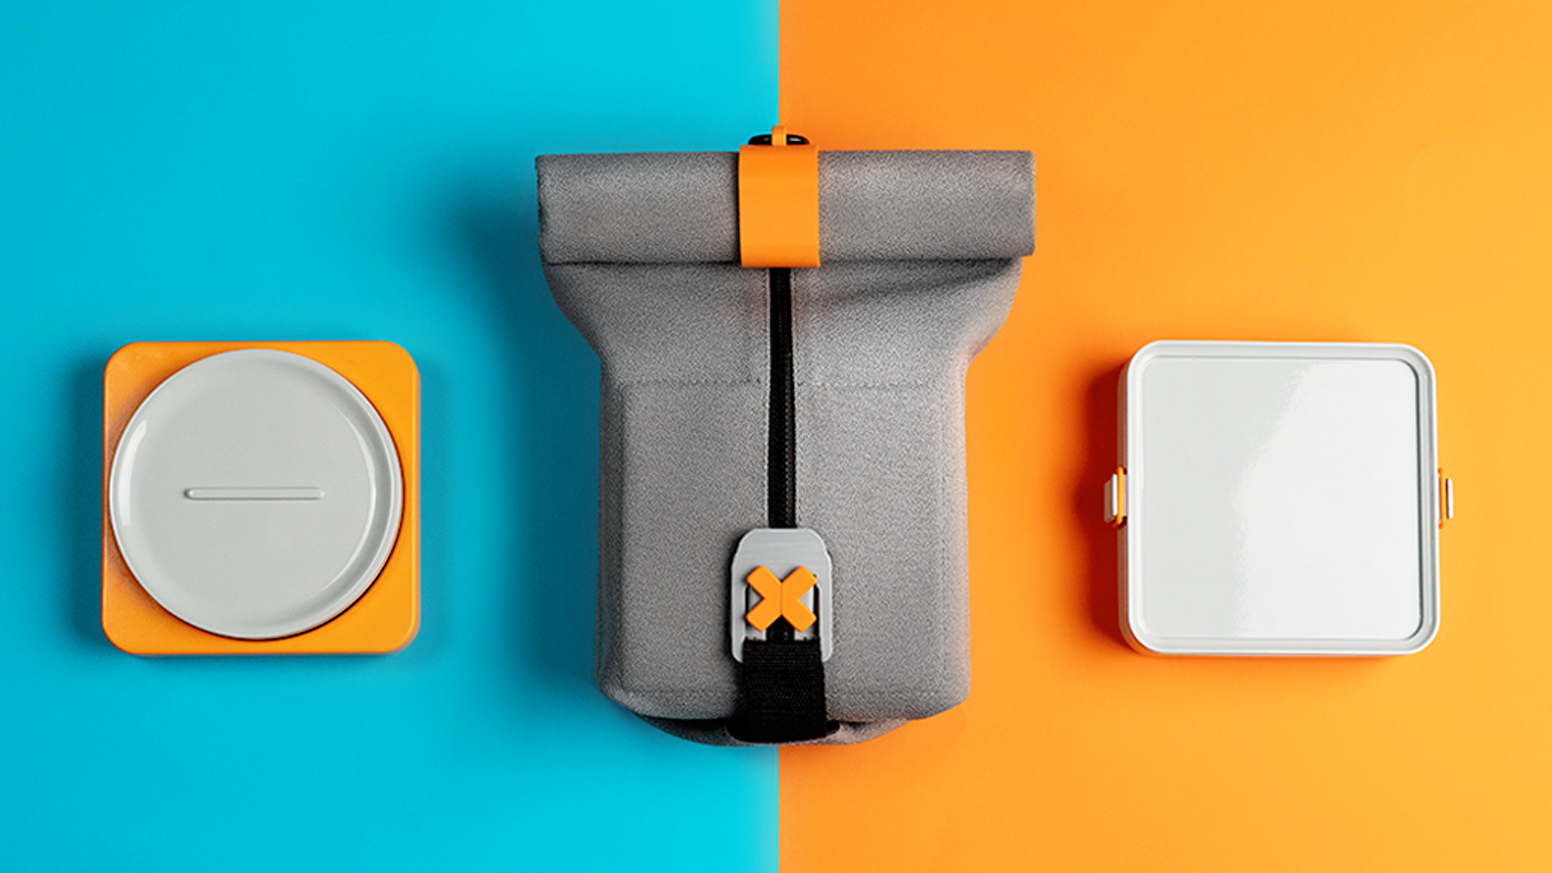 Foldeat has 15 unique features smartly integrated. Packing and eating on the go have never been easier.